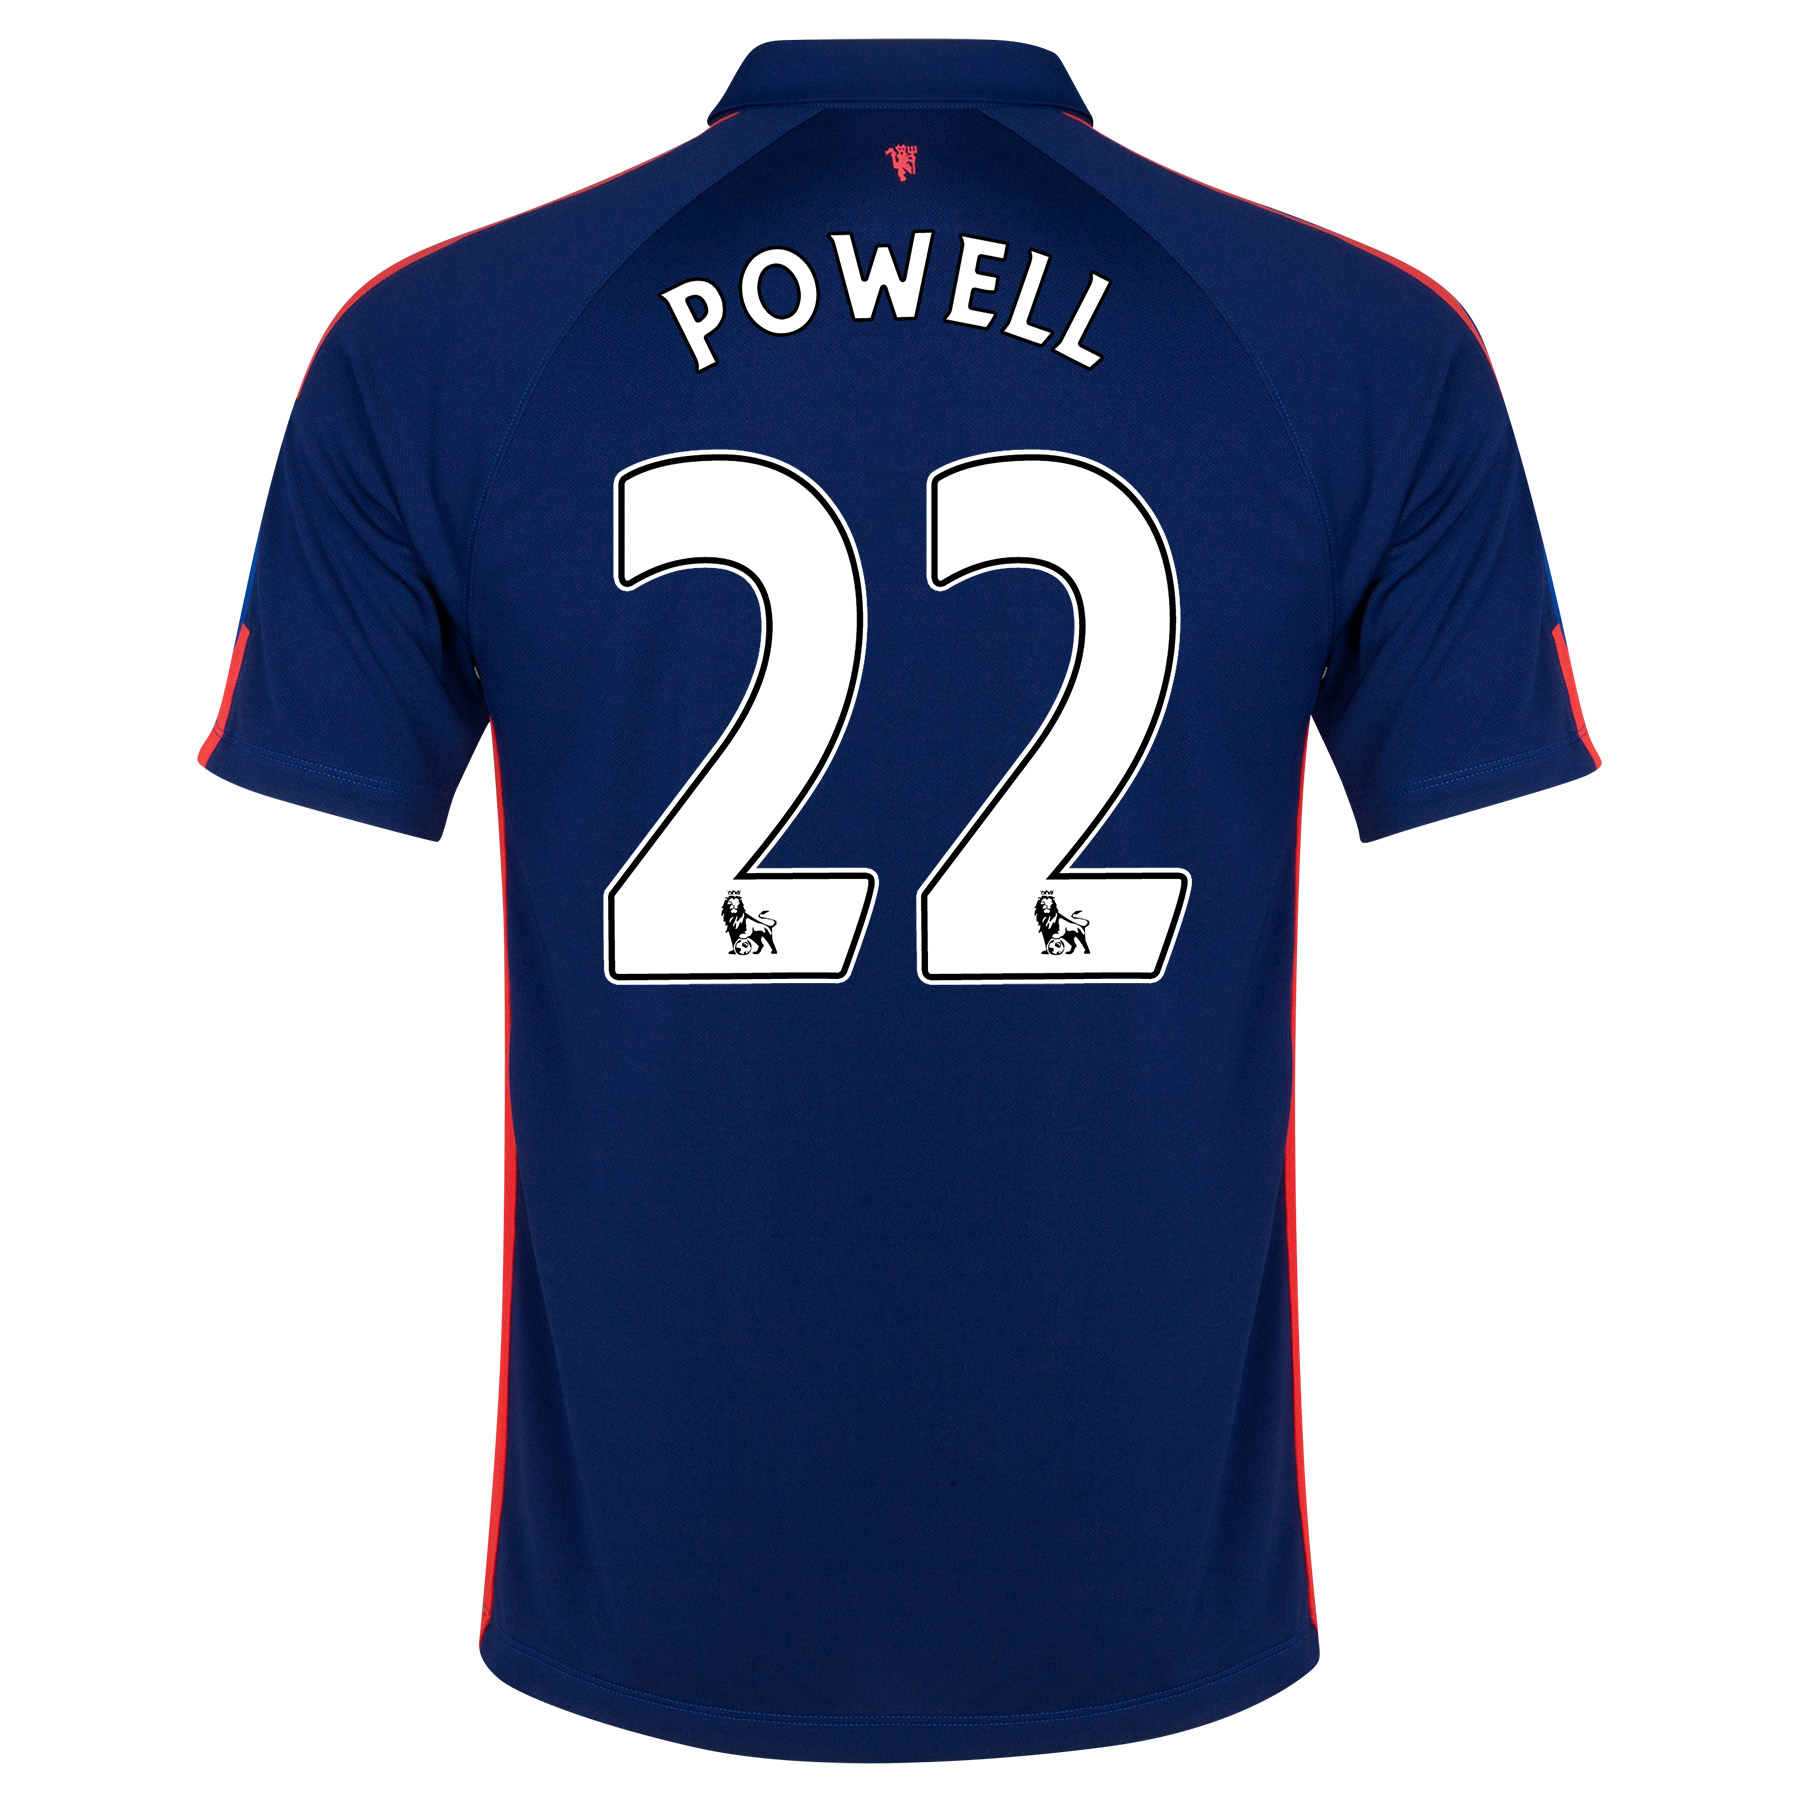 Manchester United Third Kit 2014/15 - Little Boys with Powell 22 printing